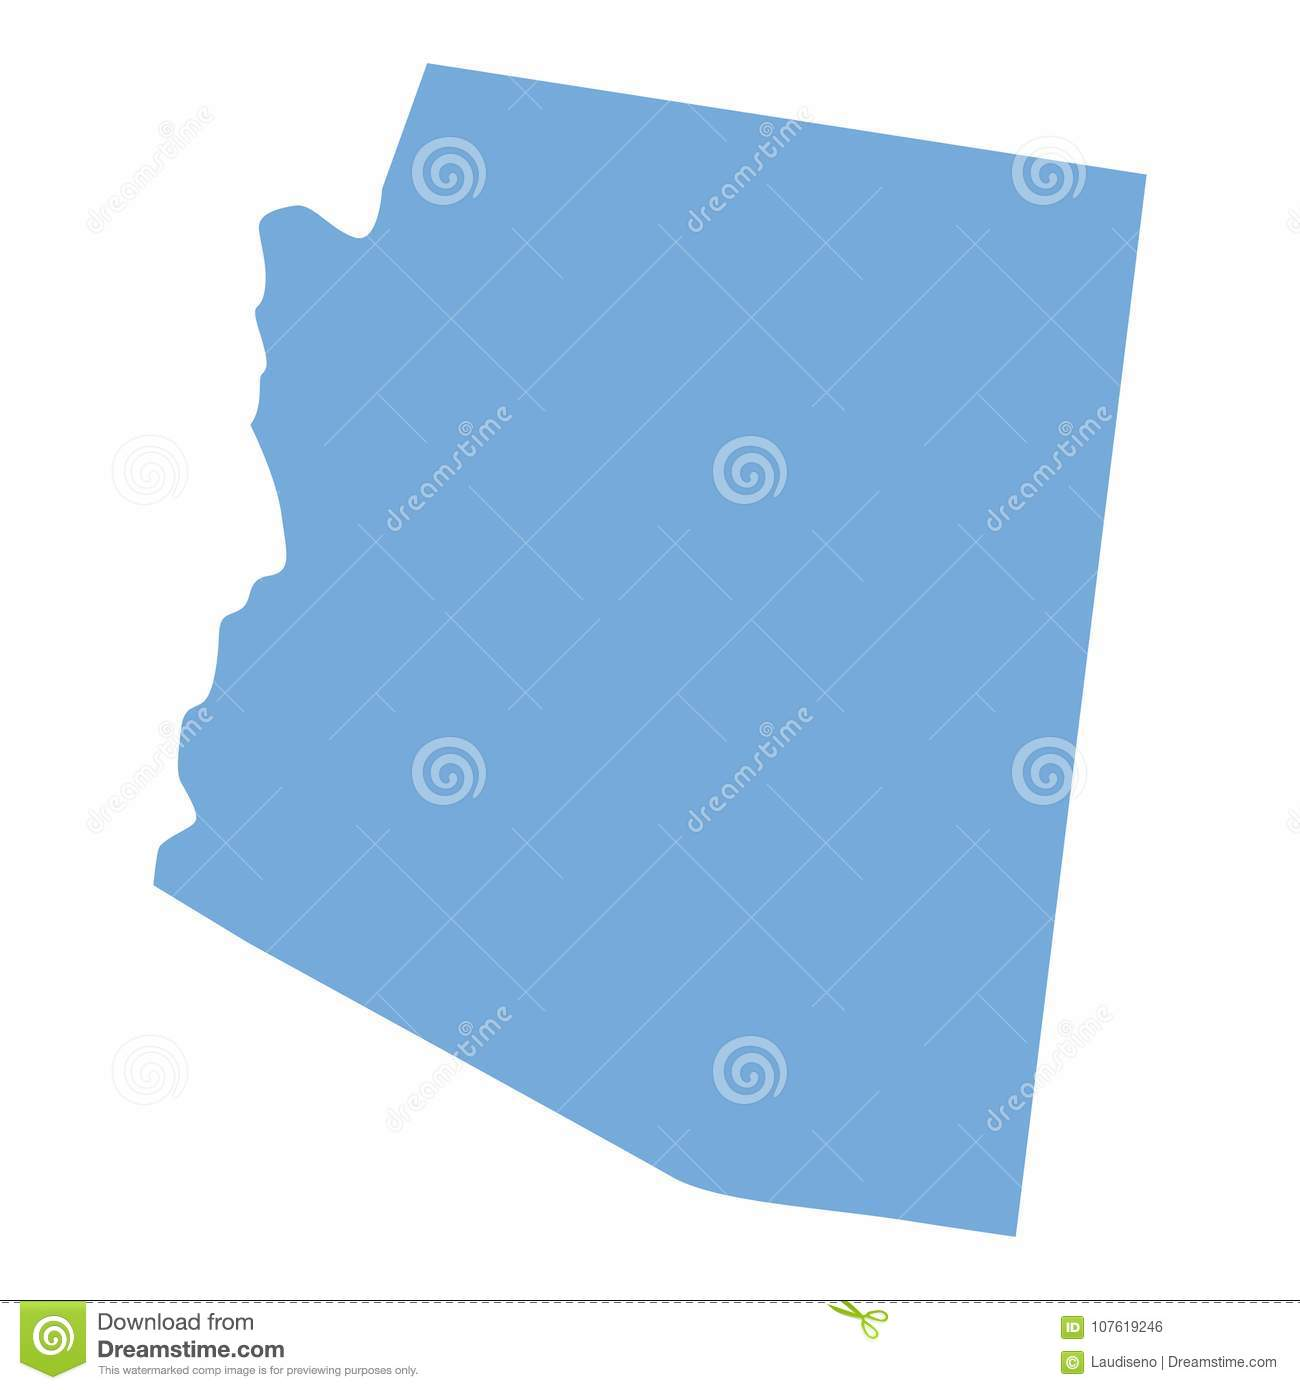 Arizona State map stock vector. Illustration of cartography - 107619246